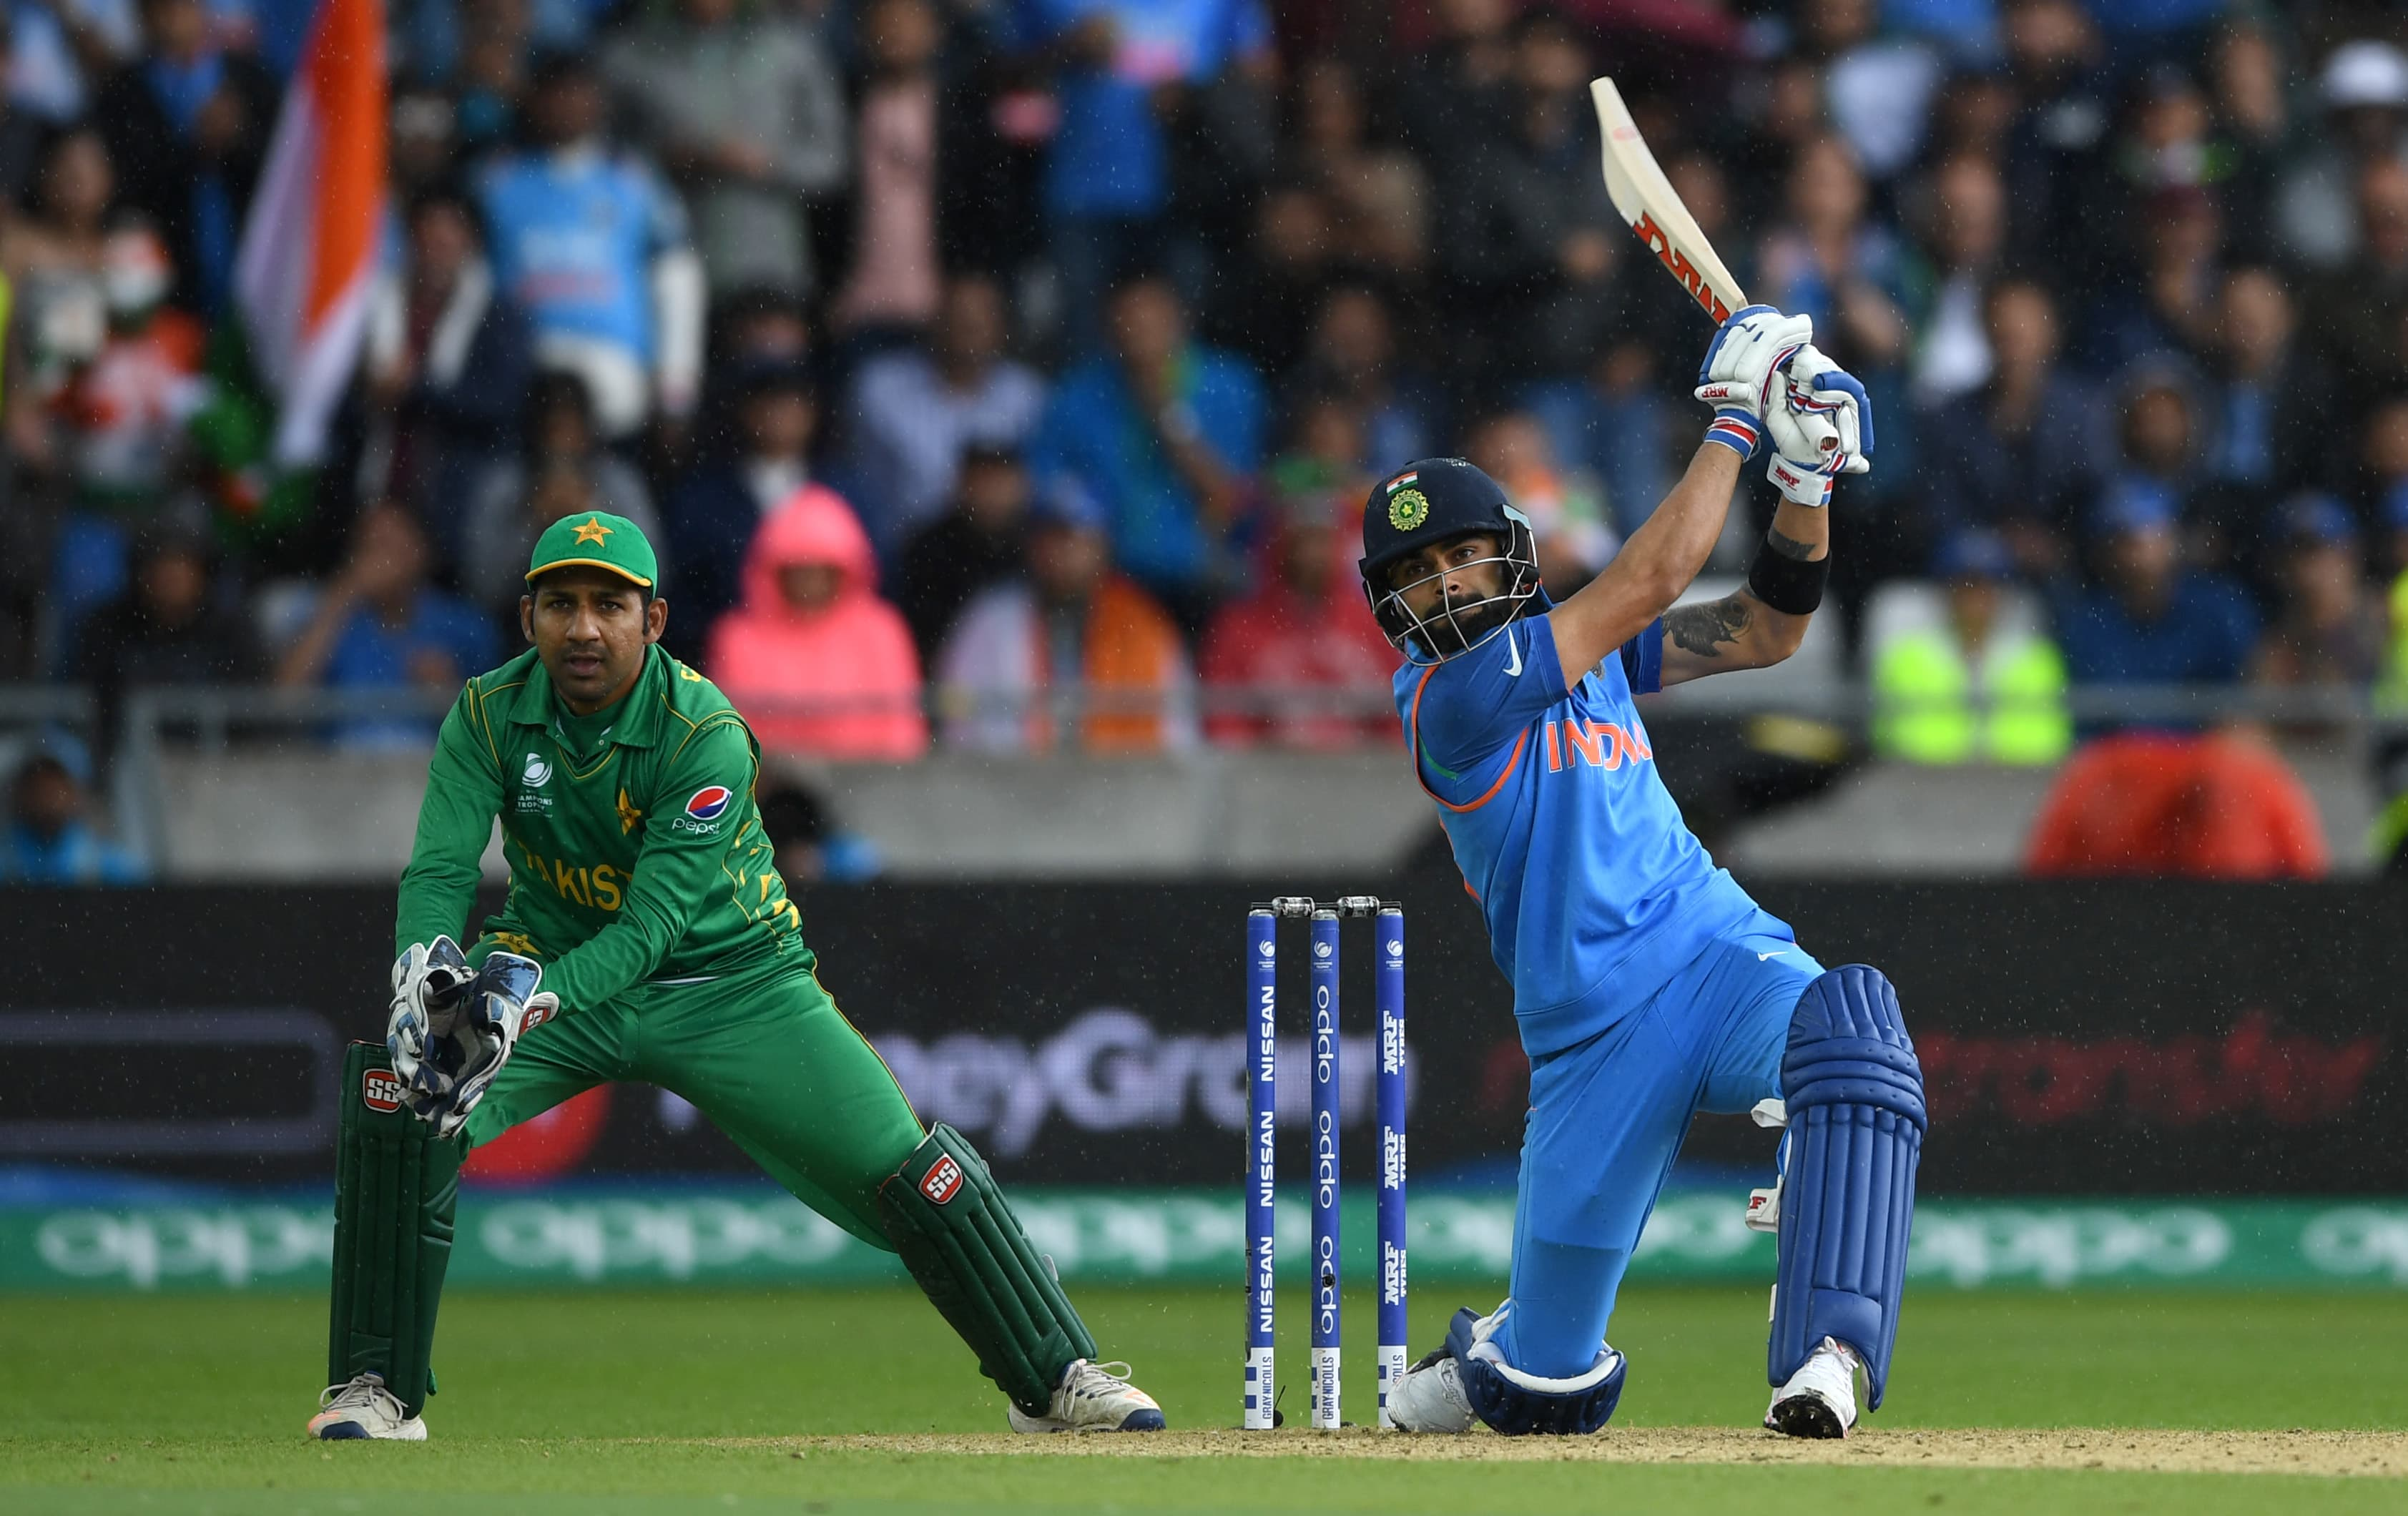 India Cricket >> Why India Vs Pakistan At The World Cup Is The Hottest Ticket